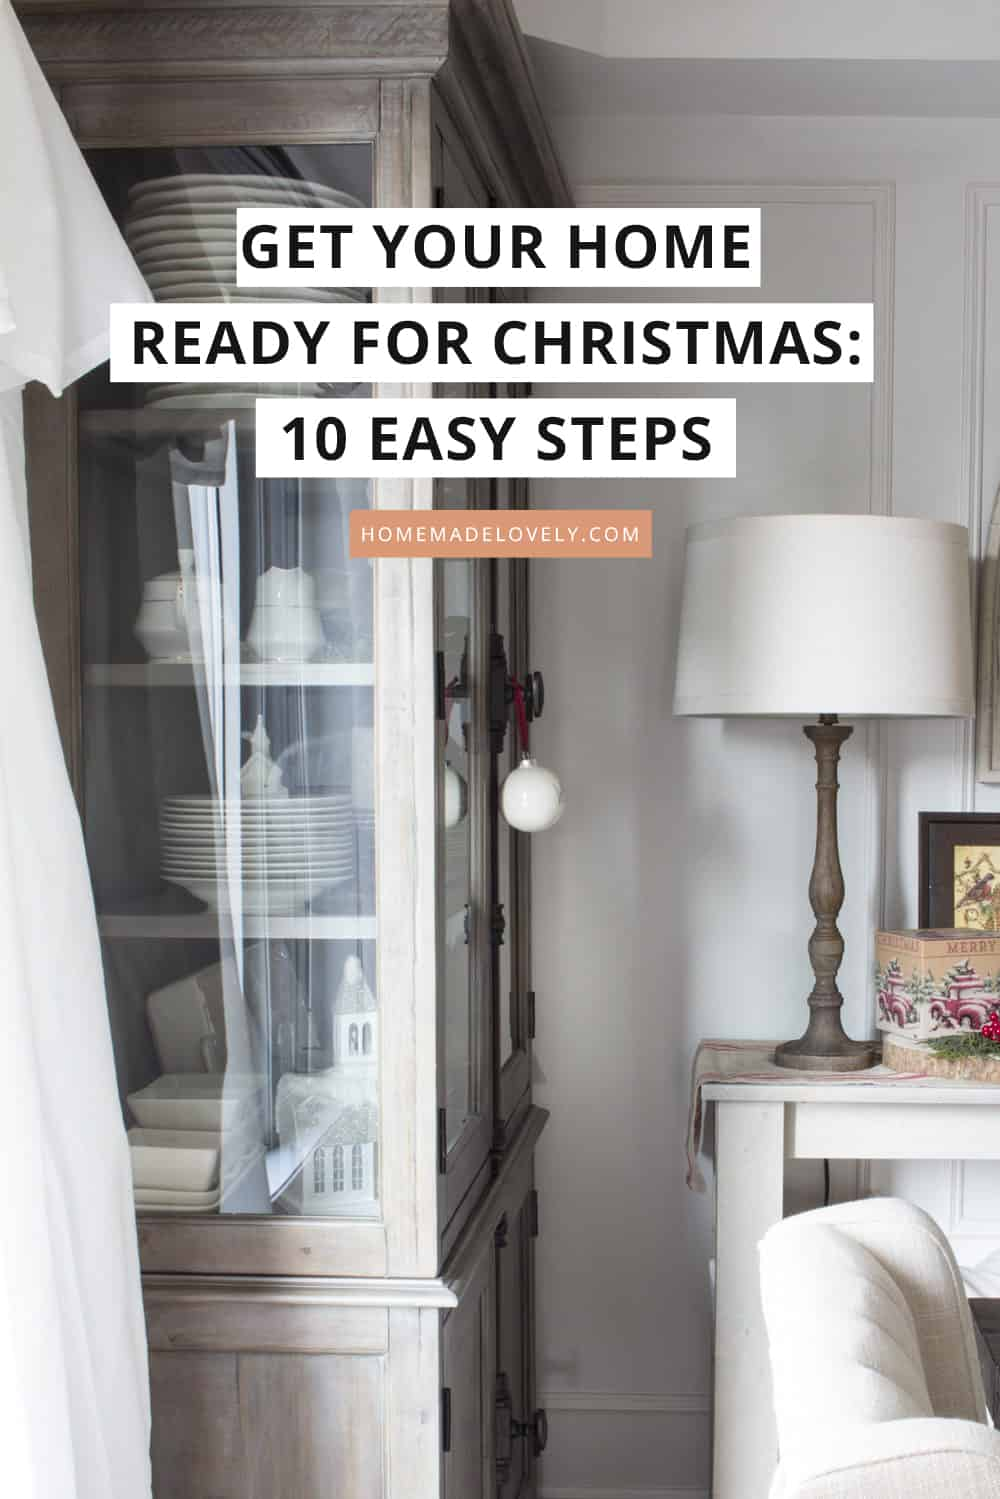 Get your home ready for the Christmas in 10 easy steps